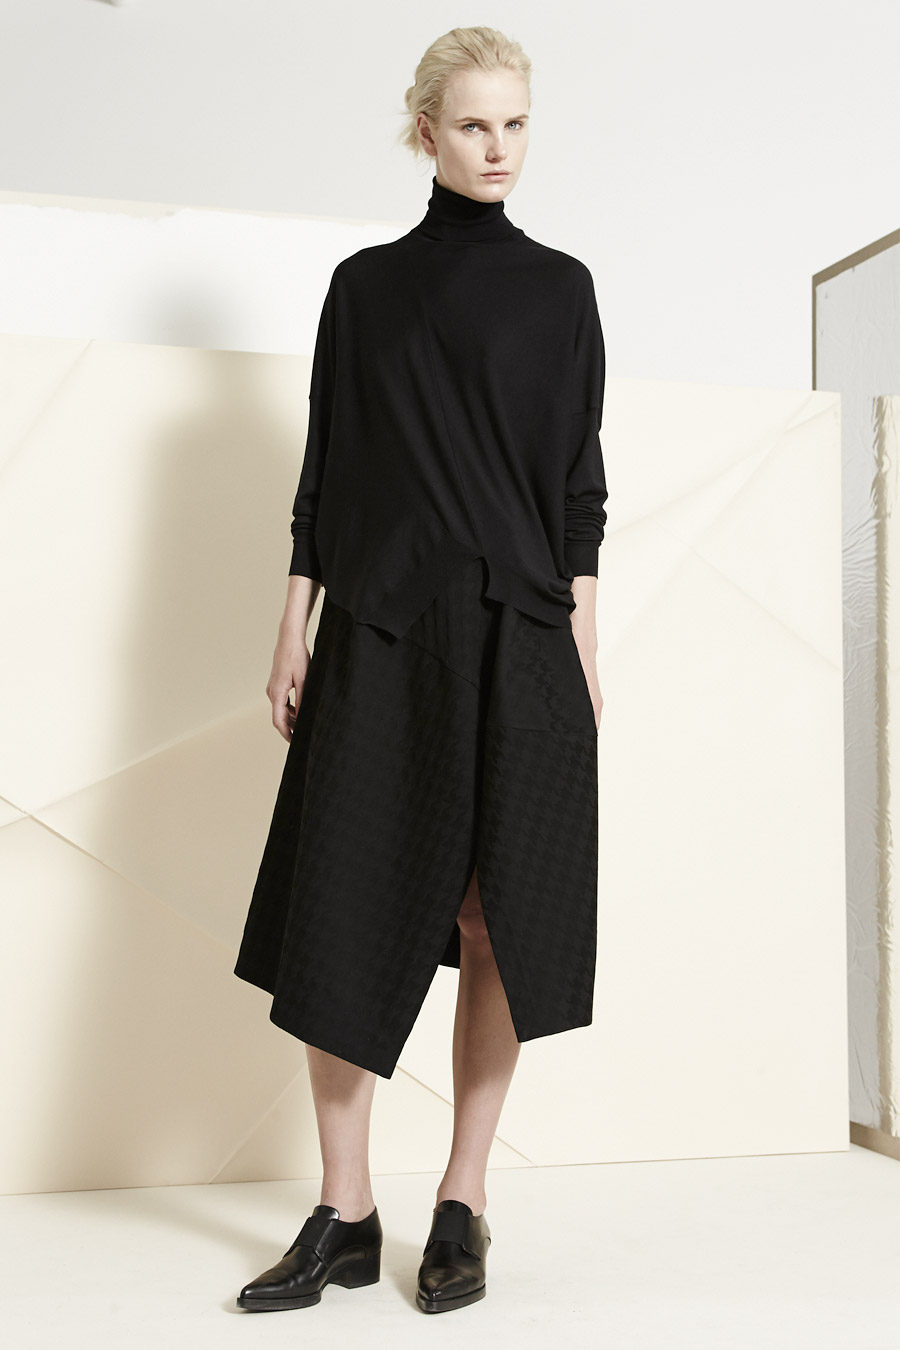 Stella McCartney pre-fall 2014